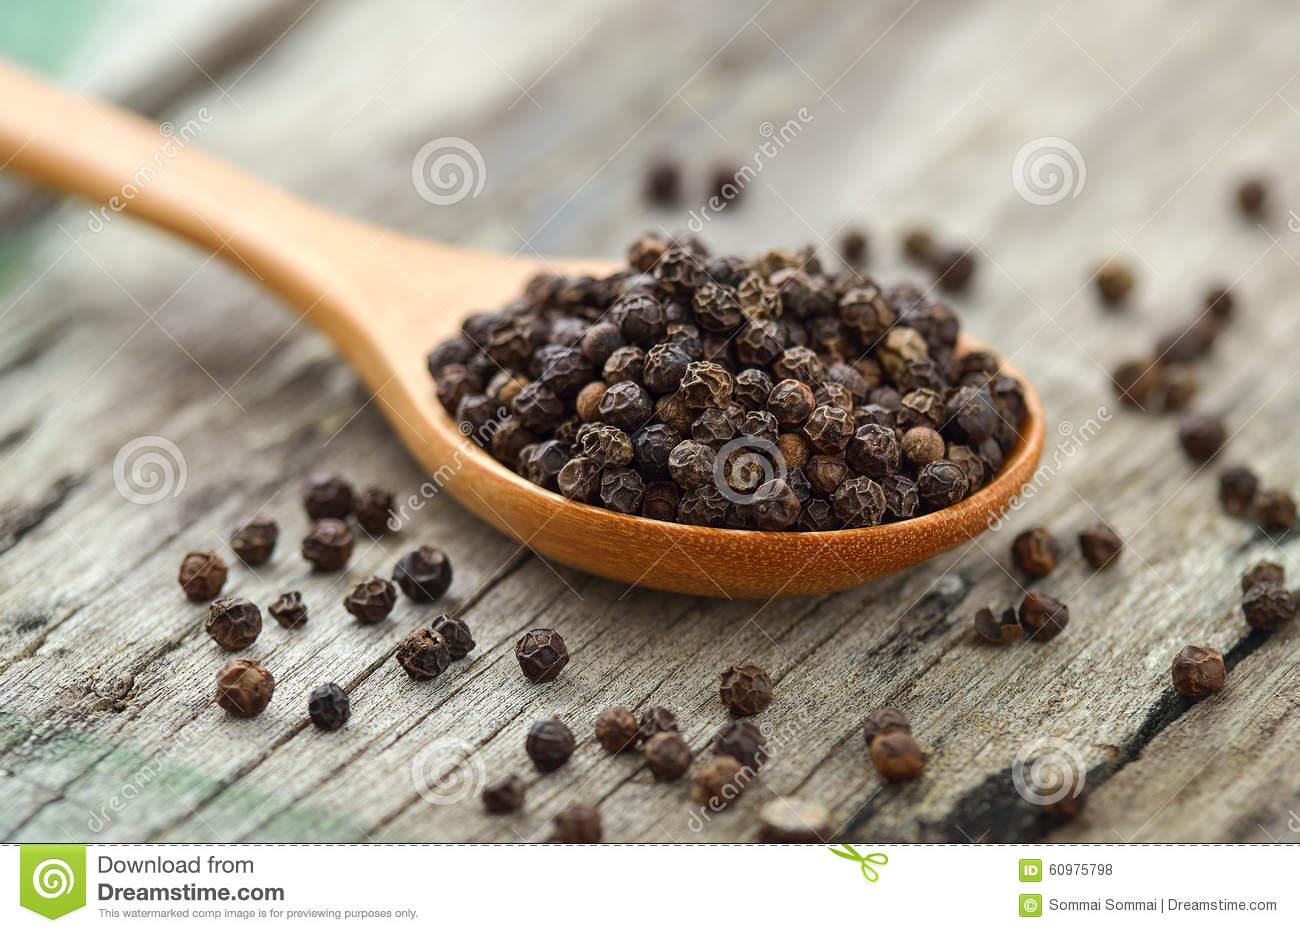 black pepper thesis Murthy, c t (2001) cryogenic size reduction and engineering properties of black pepper phd thesis, university of mysore.